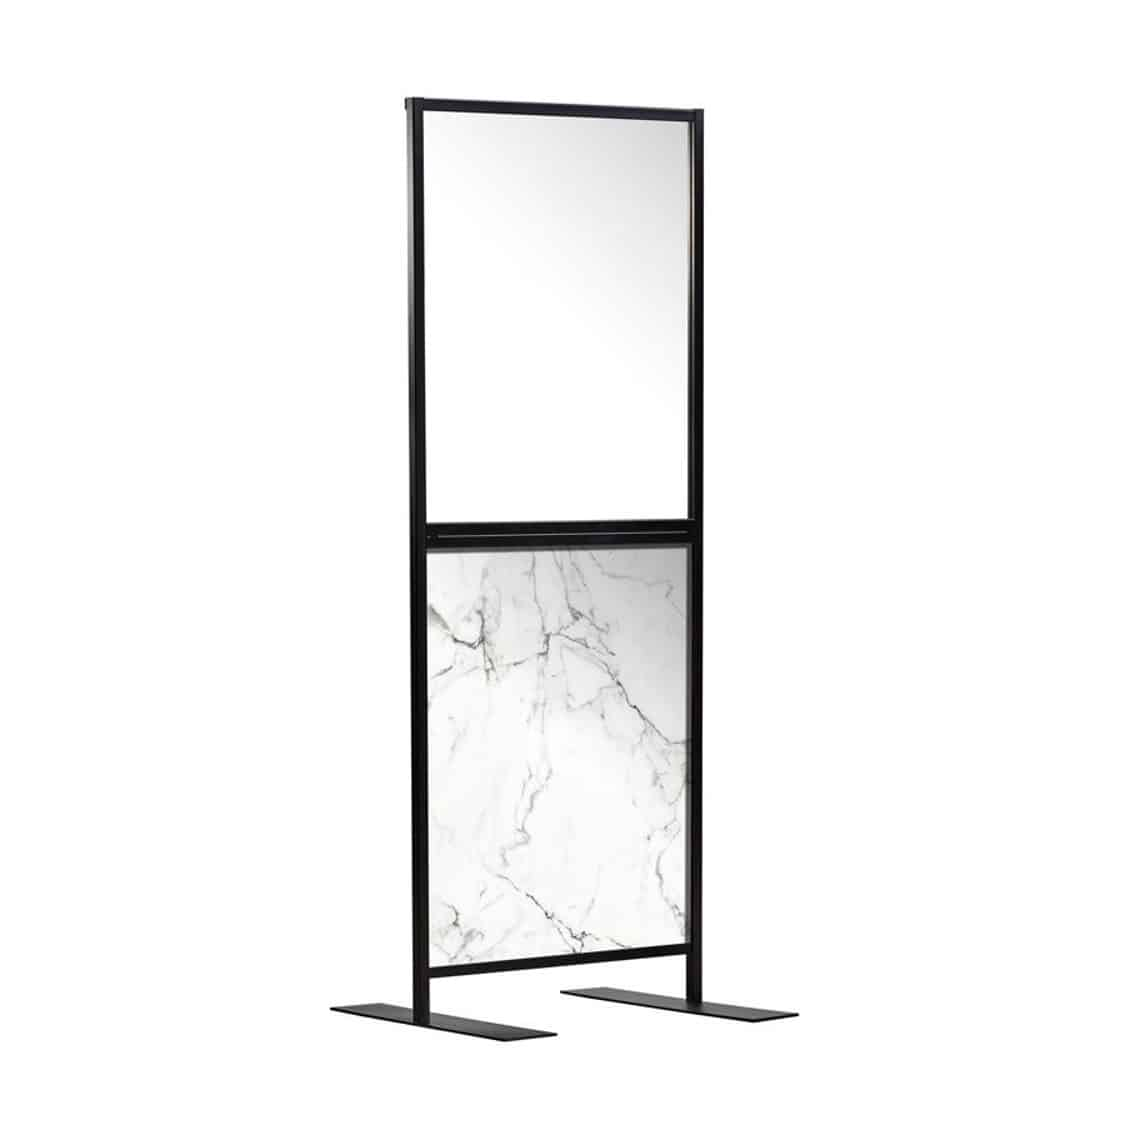 Aurora Screen 750 Carrara Marble Effect Social Distancing Screen for hospitality DeFrae Contract Furniture